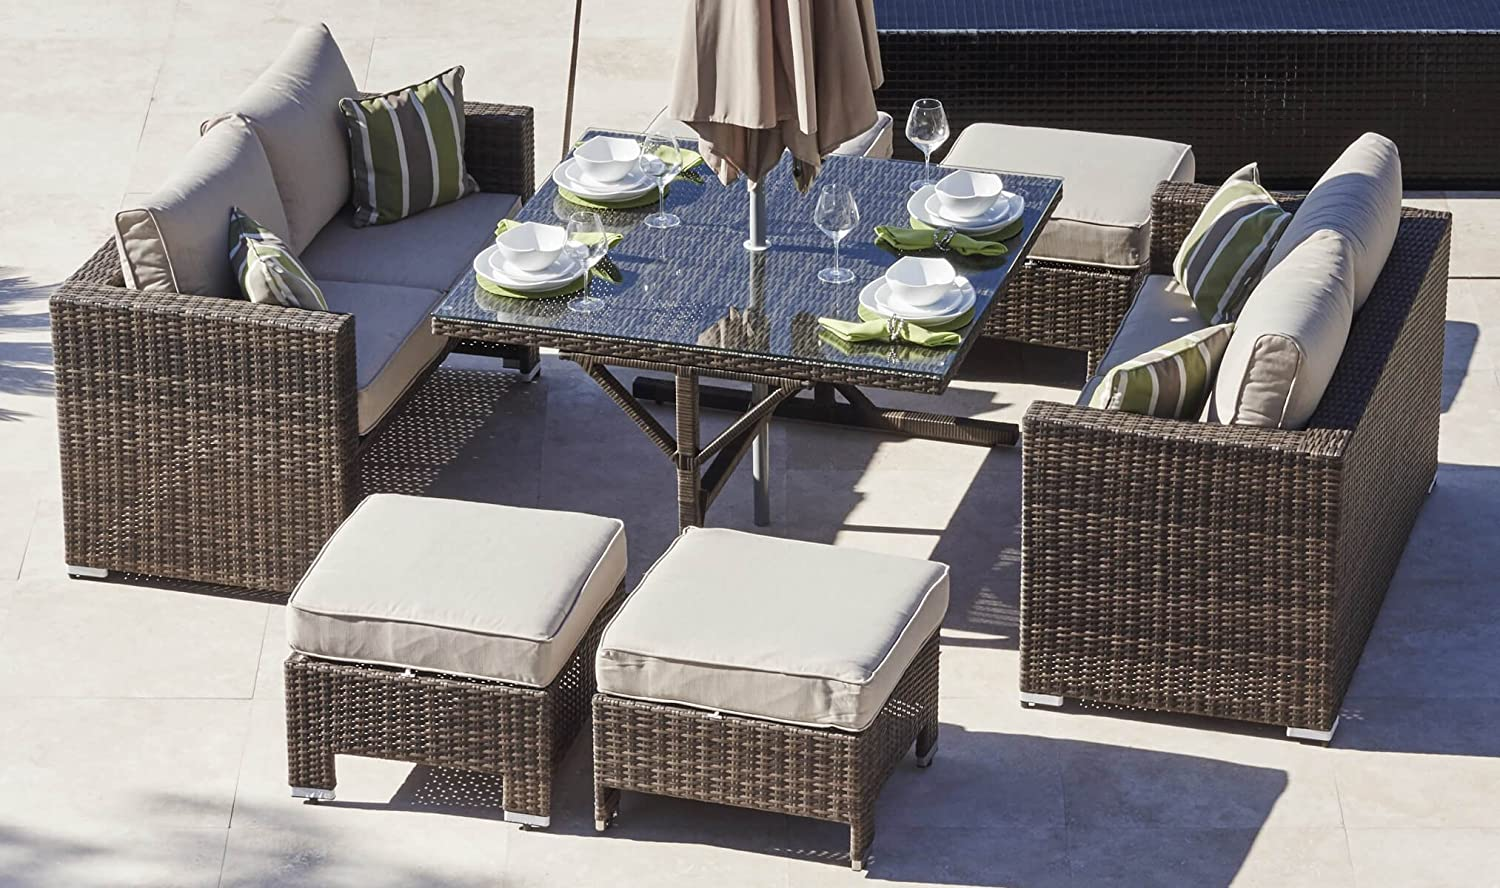 Muebles Fusion Rosario - Rattan Outdoor Sofa Set Weave Modular Dining Set Outdoor Garden [mjhdah]https://images-na.ssl-images-amazon.com/images/I/818%2BCb2bCnL._SL1500_.jpg